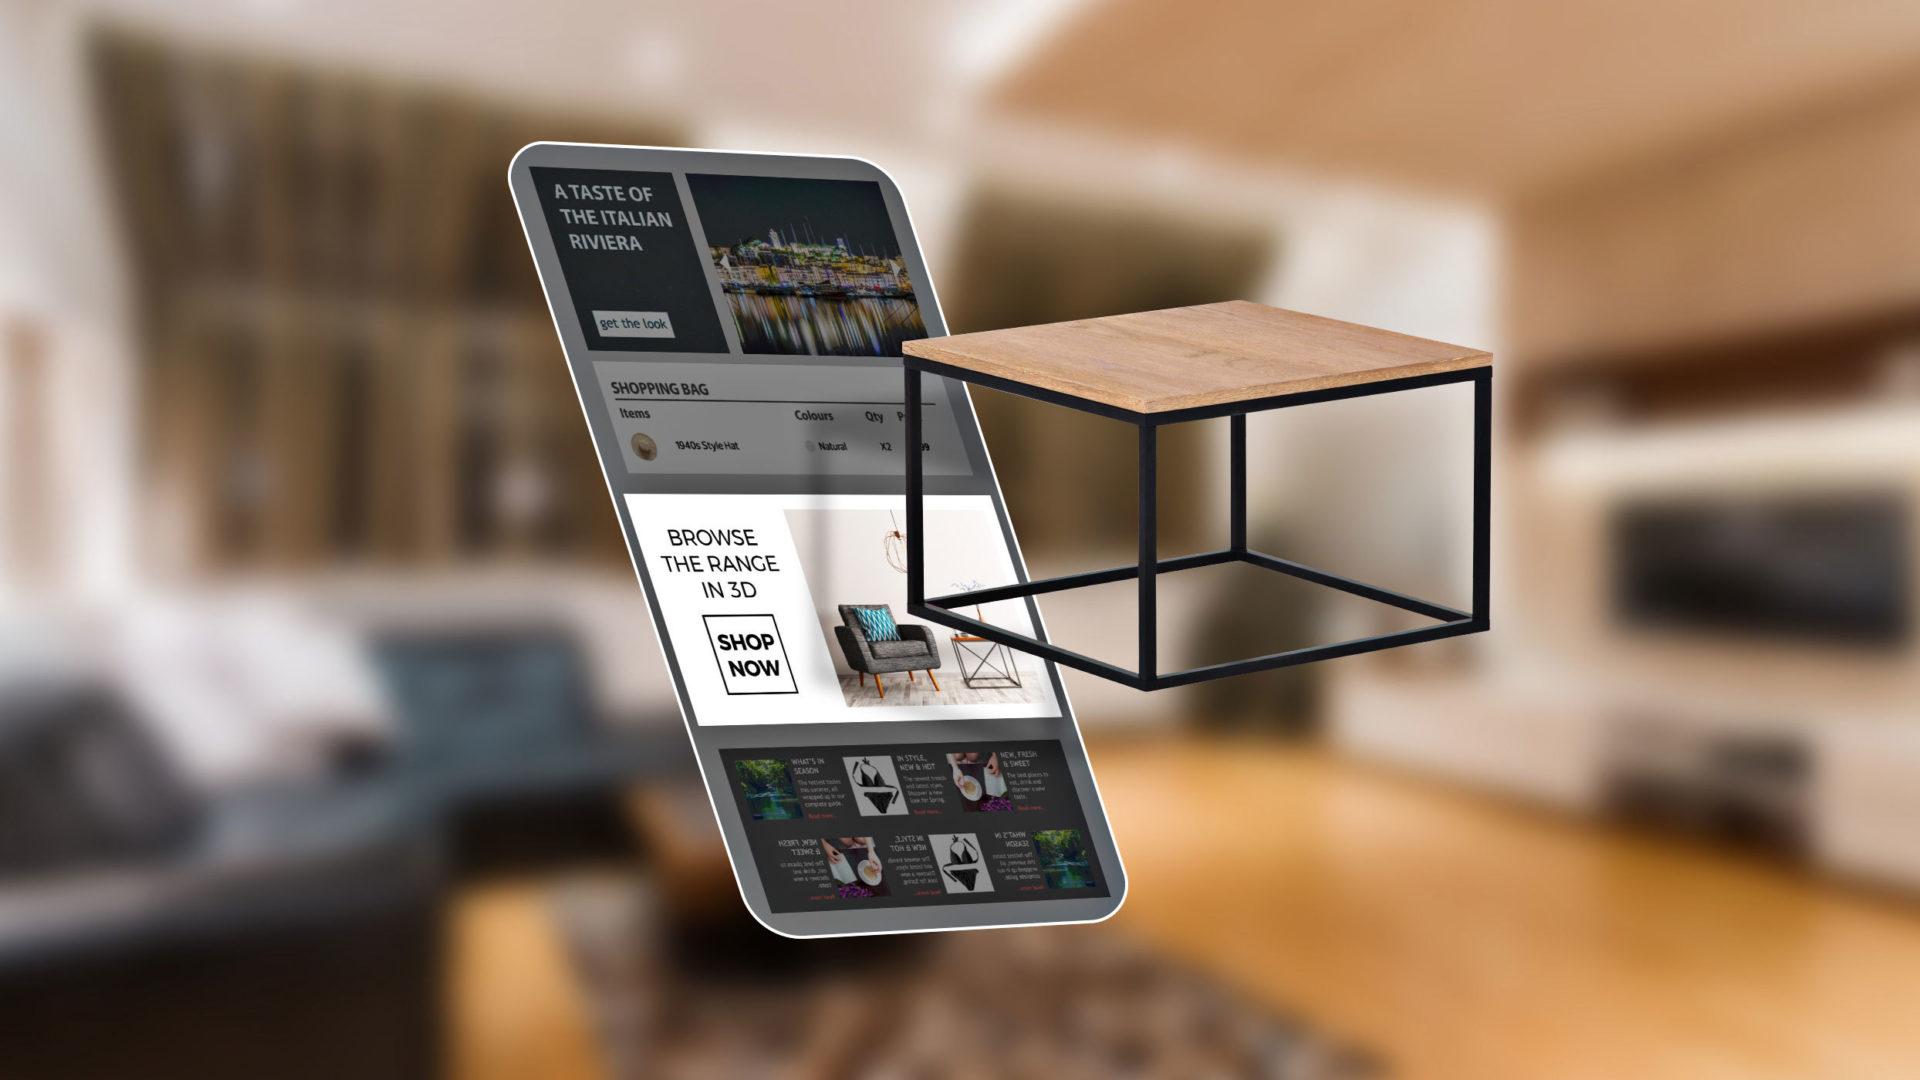 Reinventing digital ads: AR increases engagement by 30%